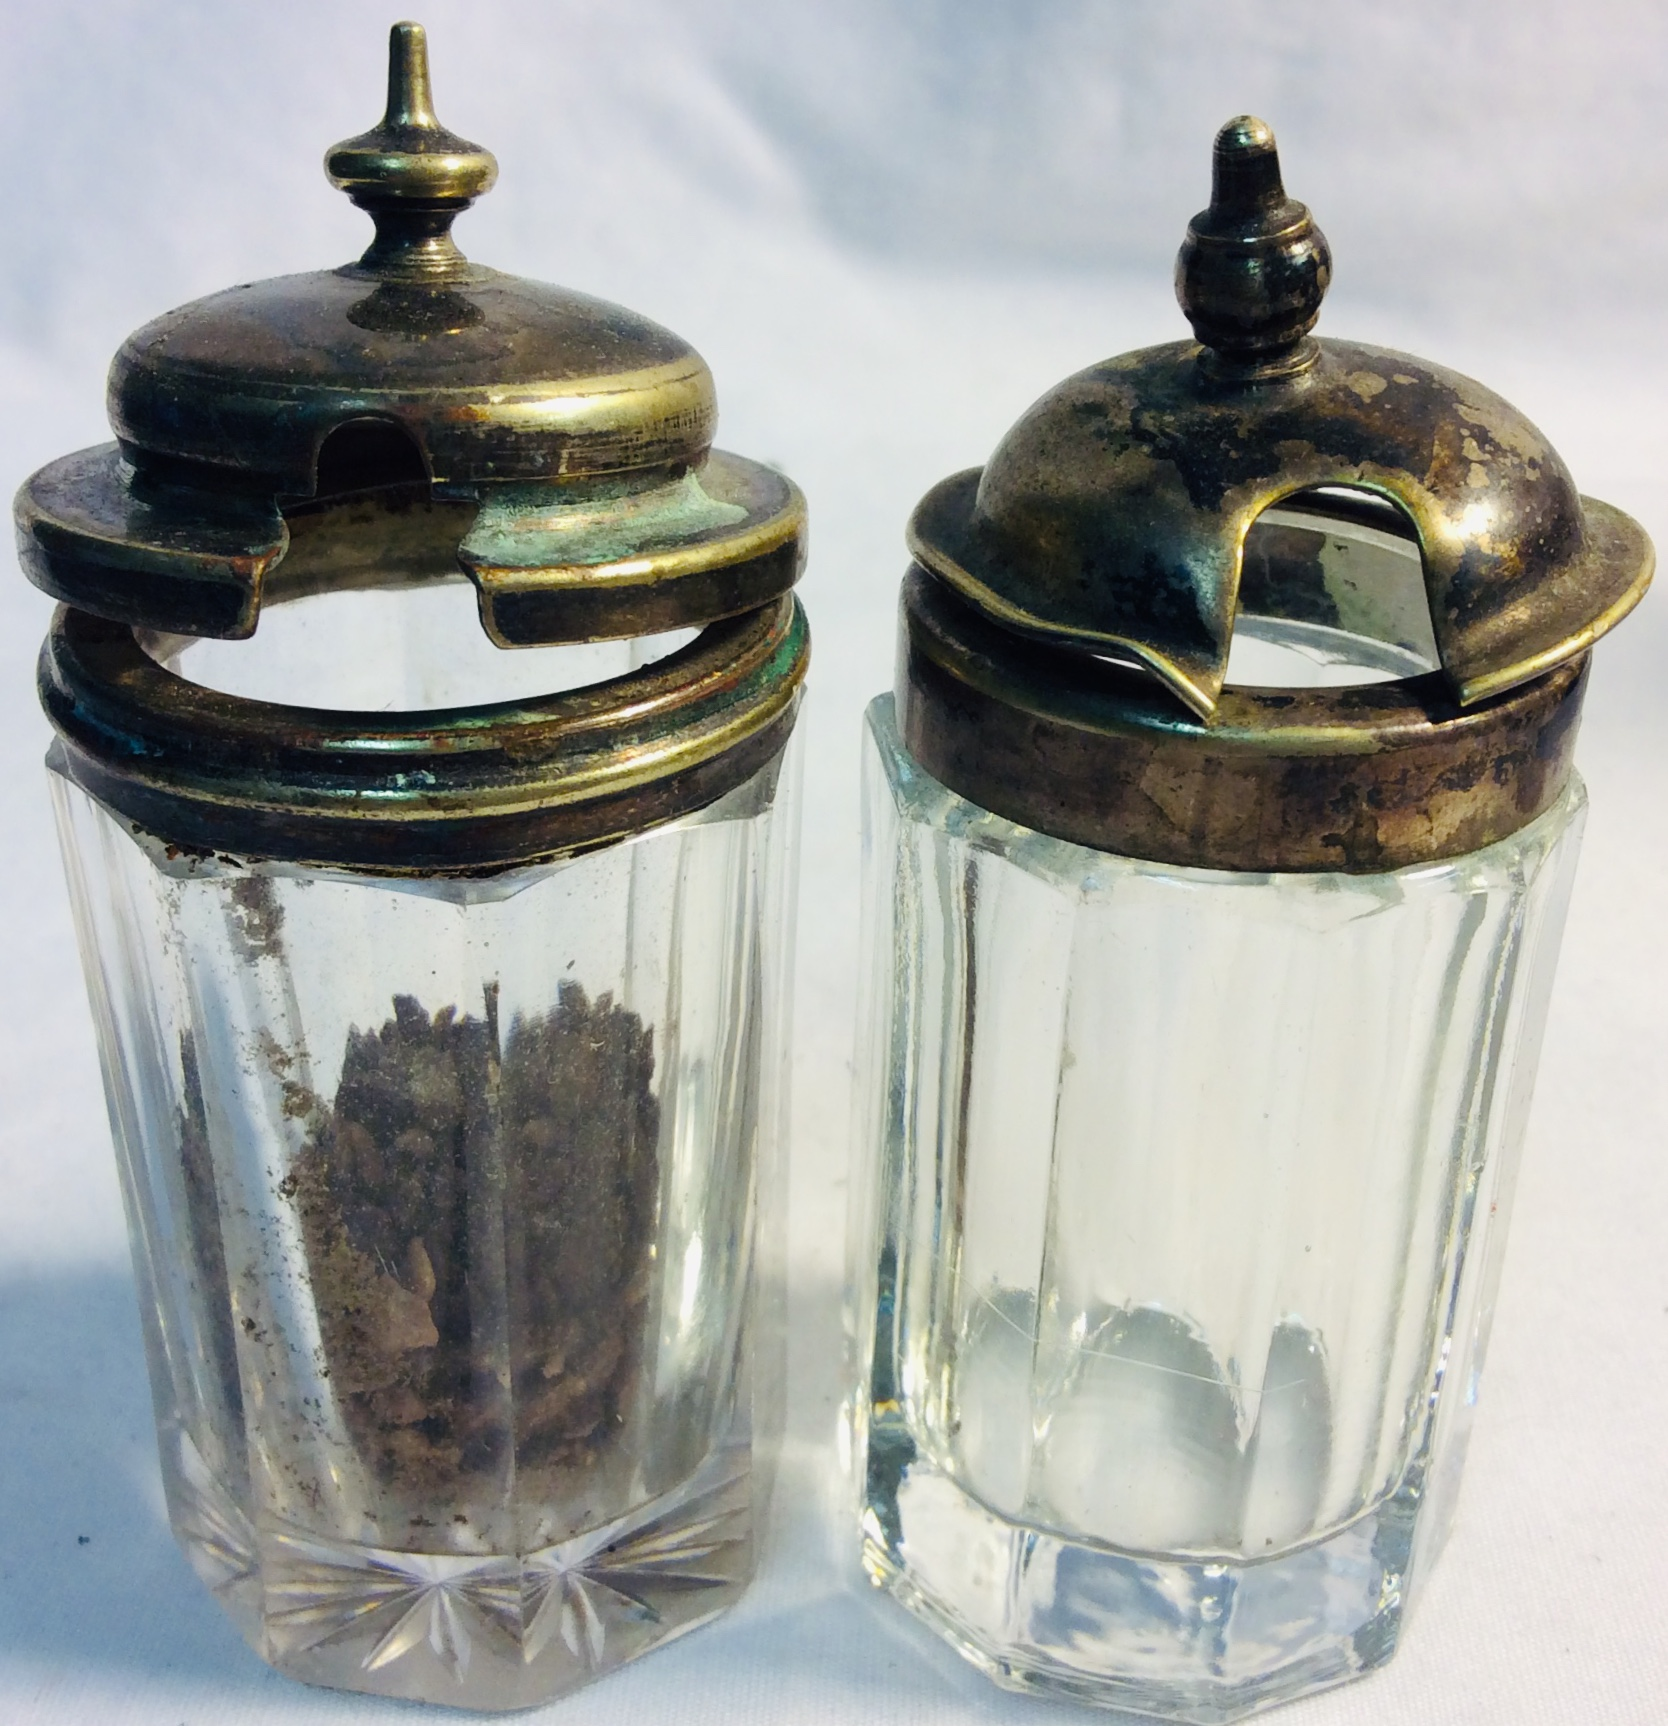 Small potion glass containers with aged metal lid